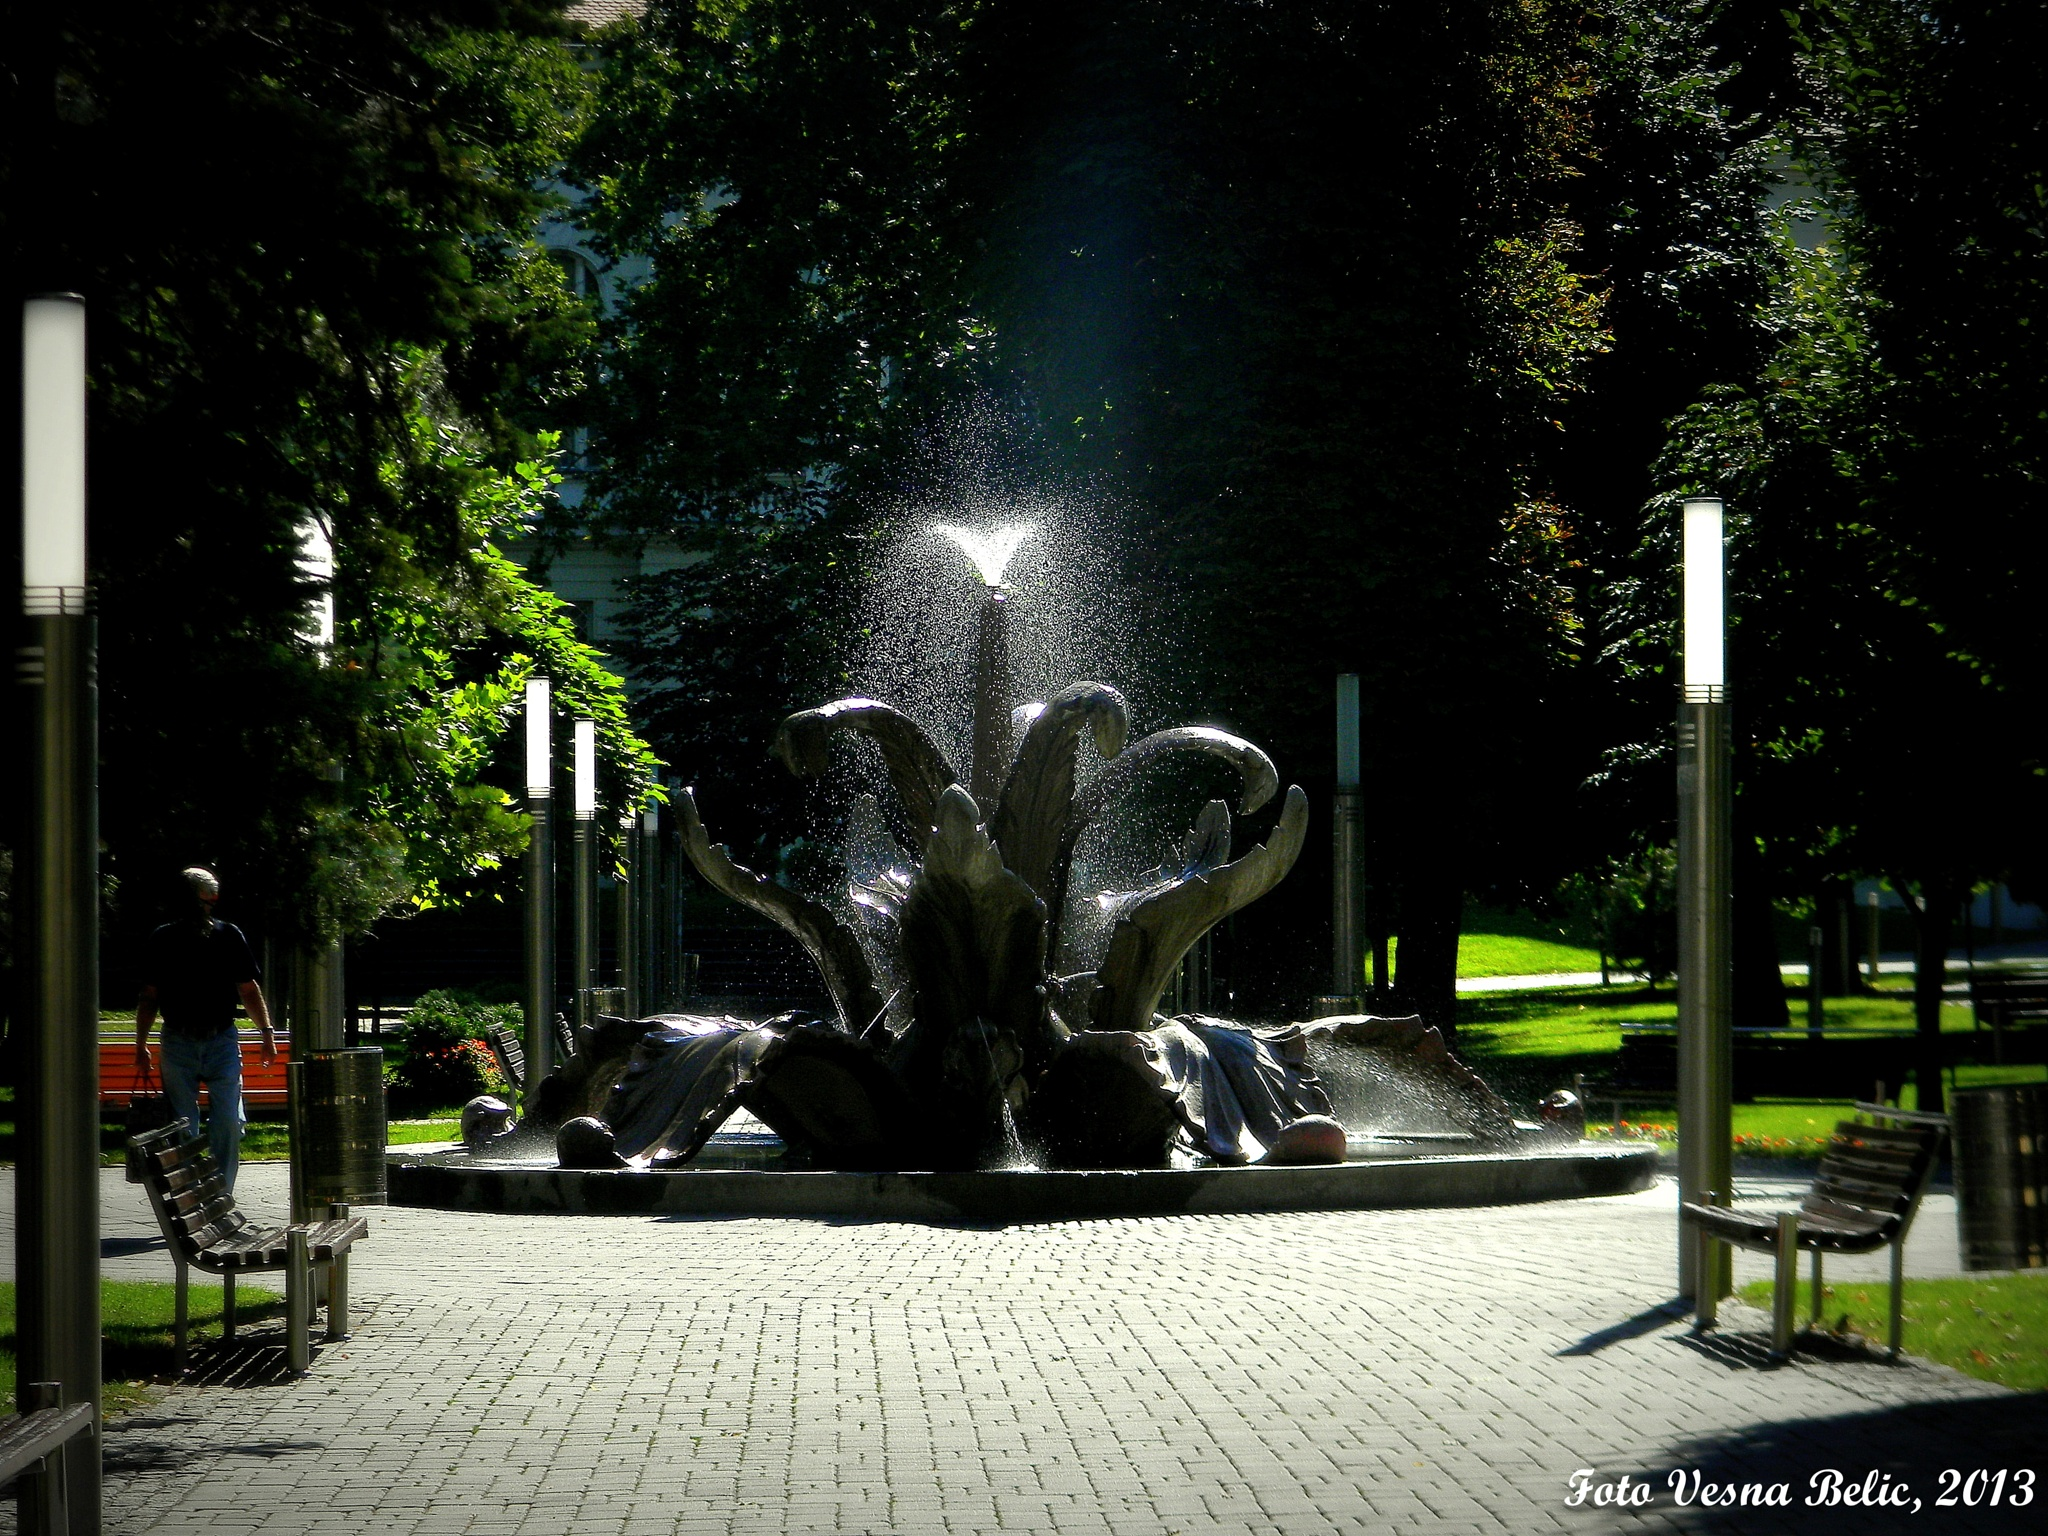 fountain in my city a symbol of unity of water and flower 1945 by Vesna Belic